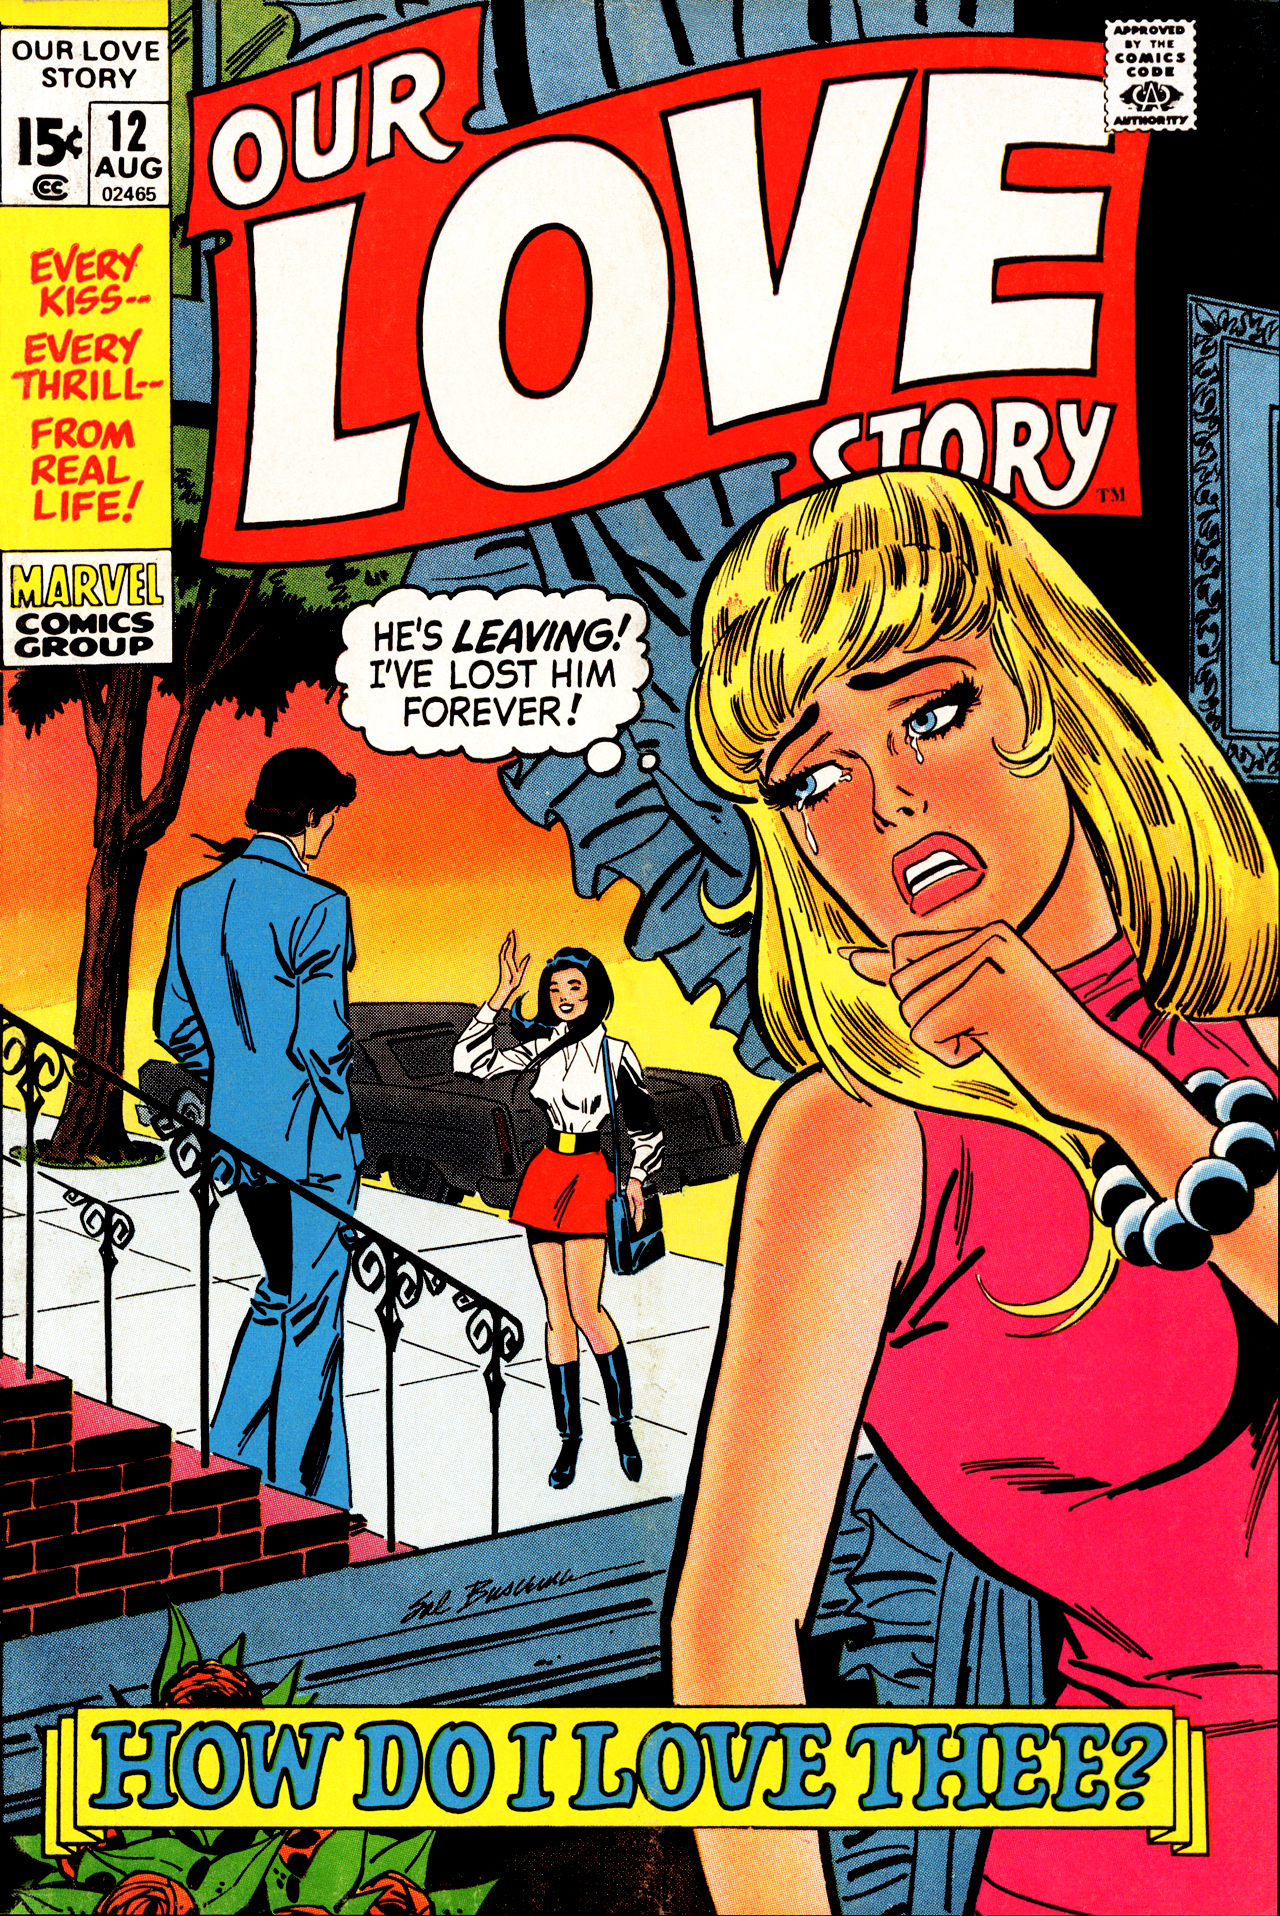 Our Love Story (1969) #12, cover by Sal Buscema.